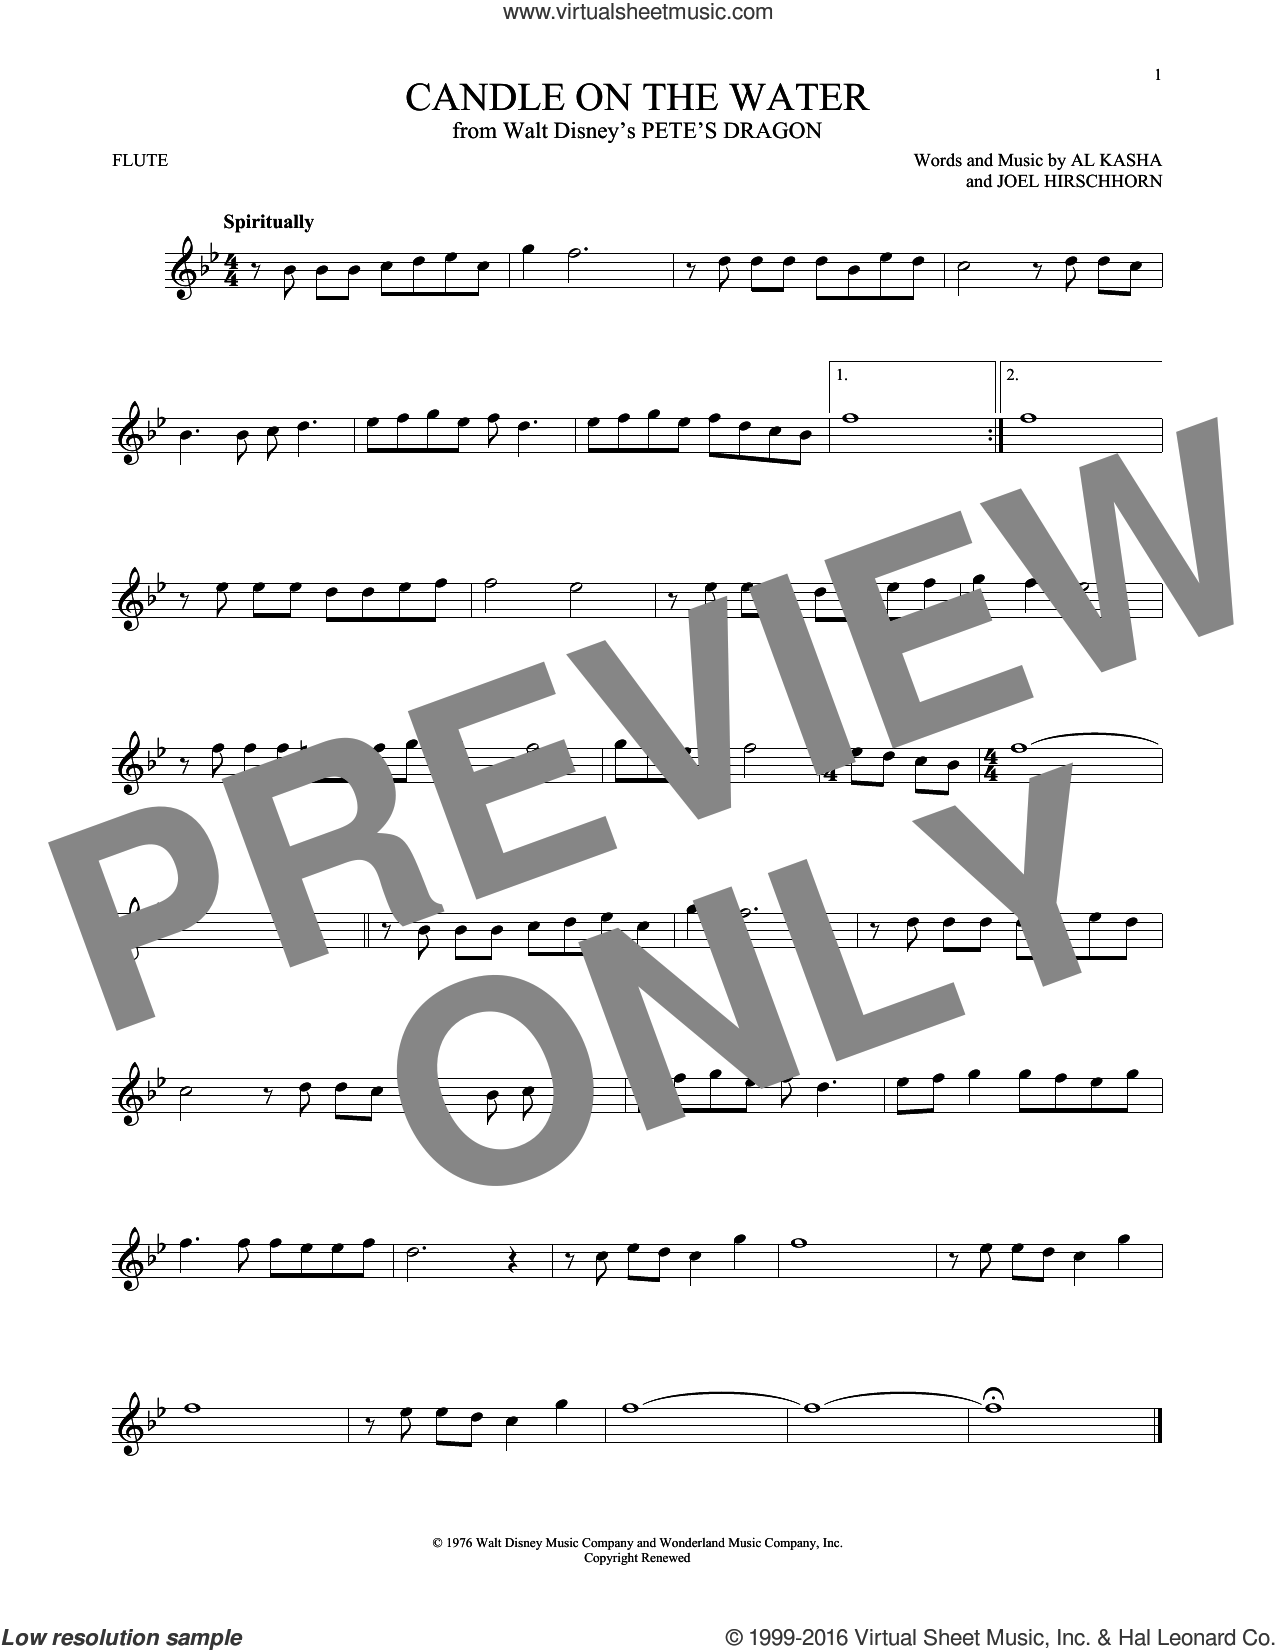 Candle On The Water sheet music for flute solo by Al Kasha, Al Kasha & Joel Hirschhorn and Joel Hirschhorn, intermediate skill level